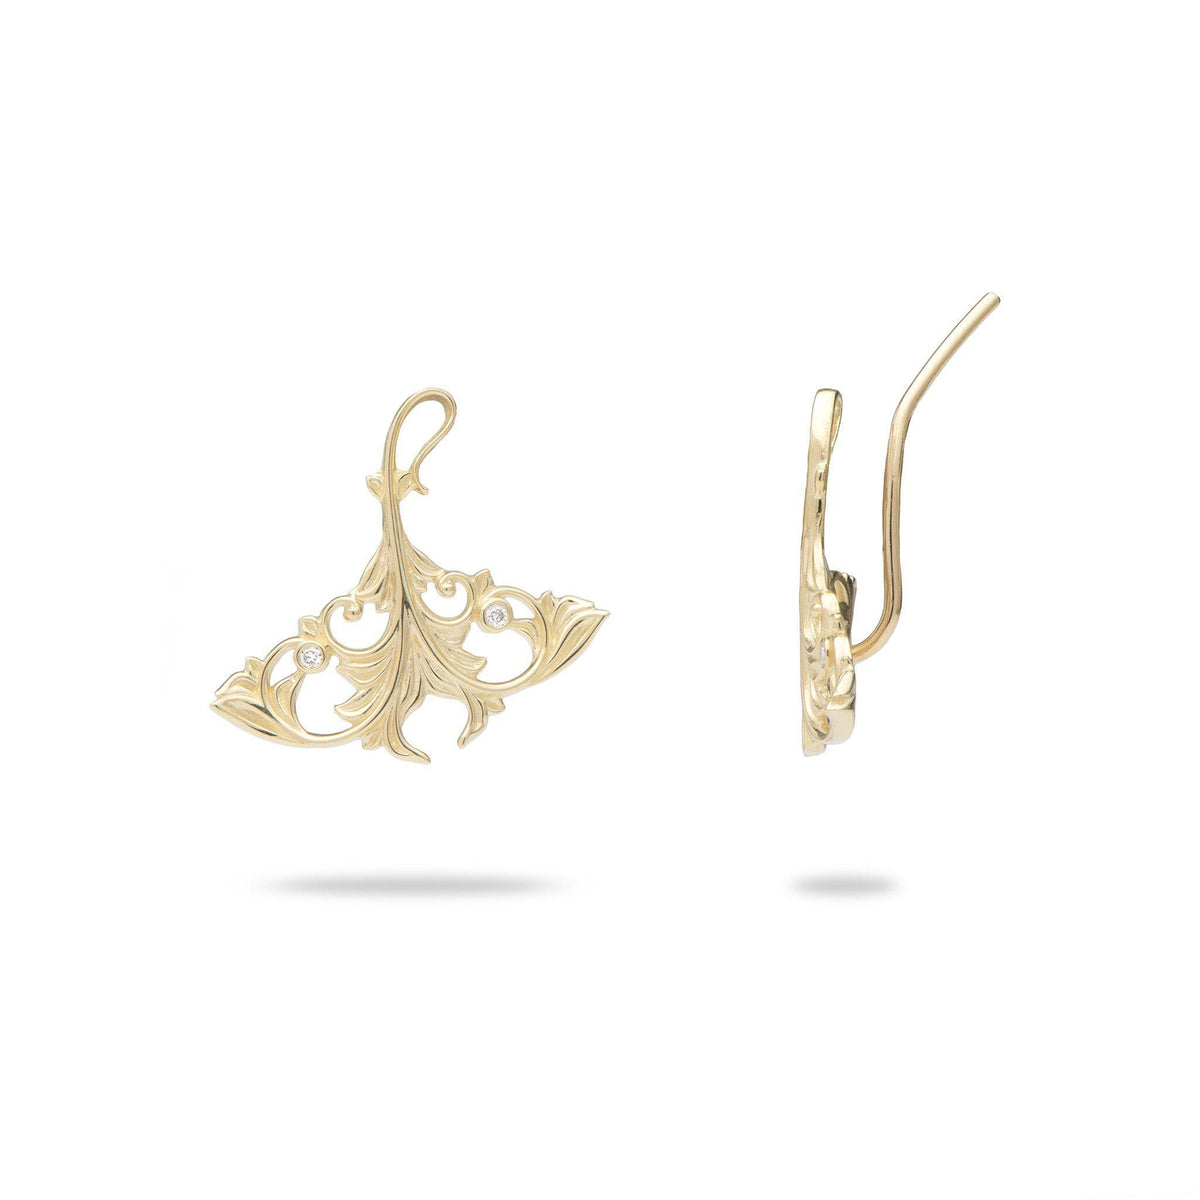 Living Heirloom Manta Ray Earrings in Gold with Diamonds - 20mm-[SKU]